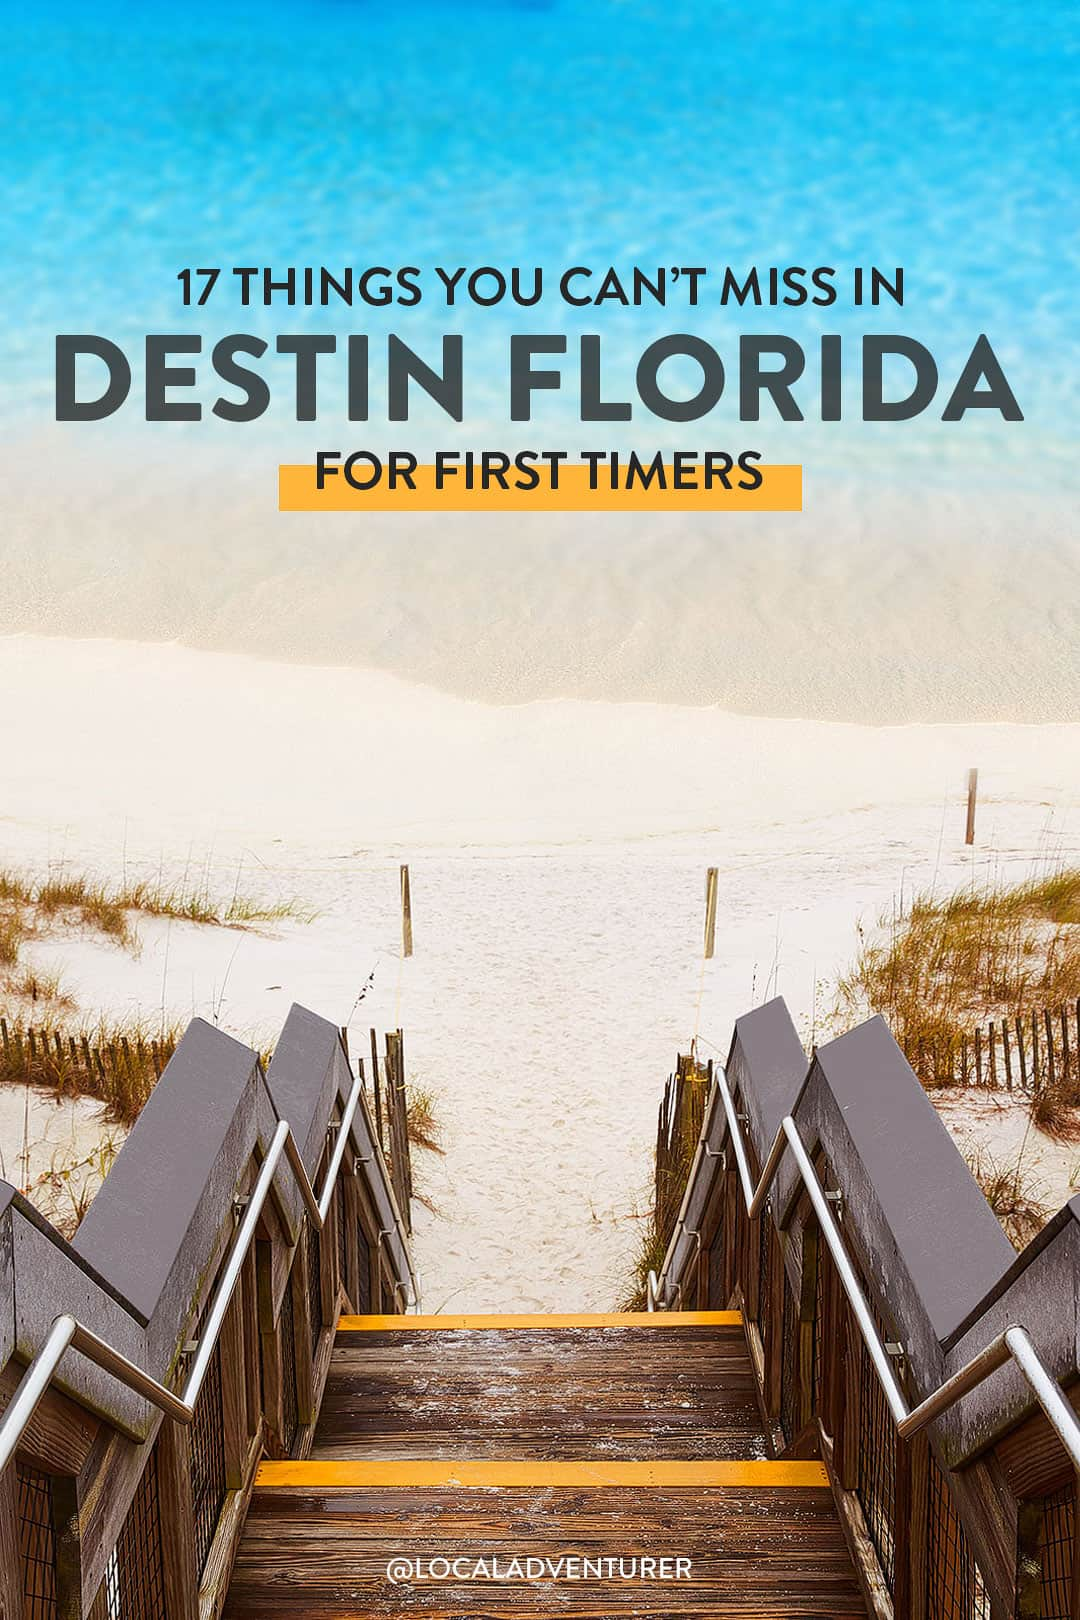 17 Can't-Miss Things to Do in Destin Florida